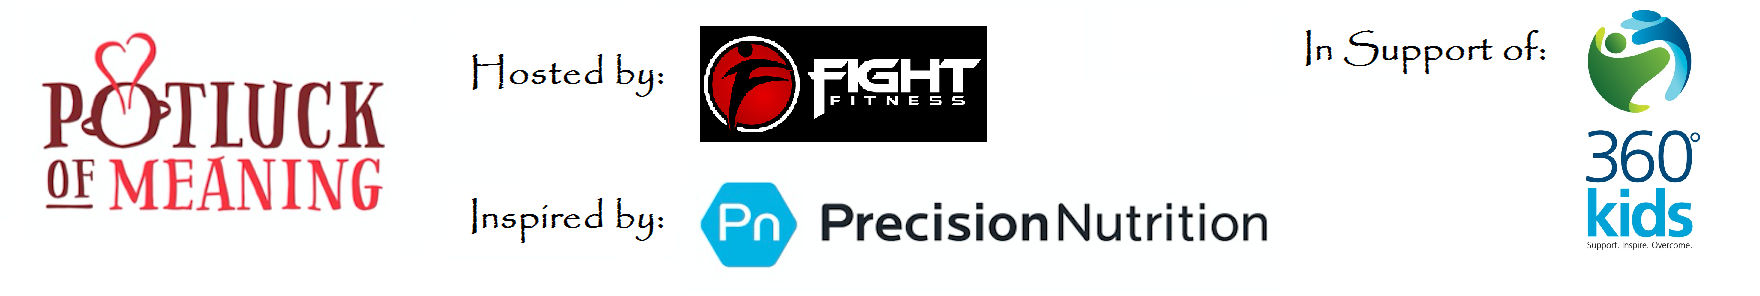 Logos for Potluck of Meaning, Fight Fitness (host), Precision Nutrition (inspiration), and 360 Kids (charity)